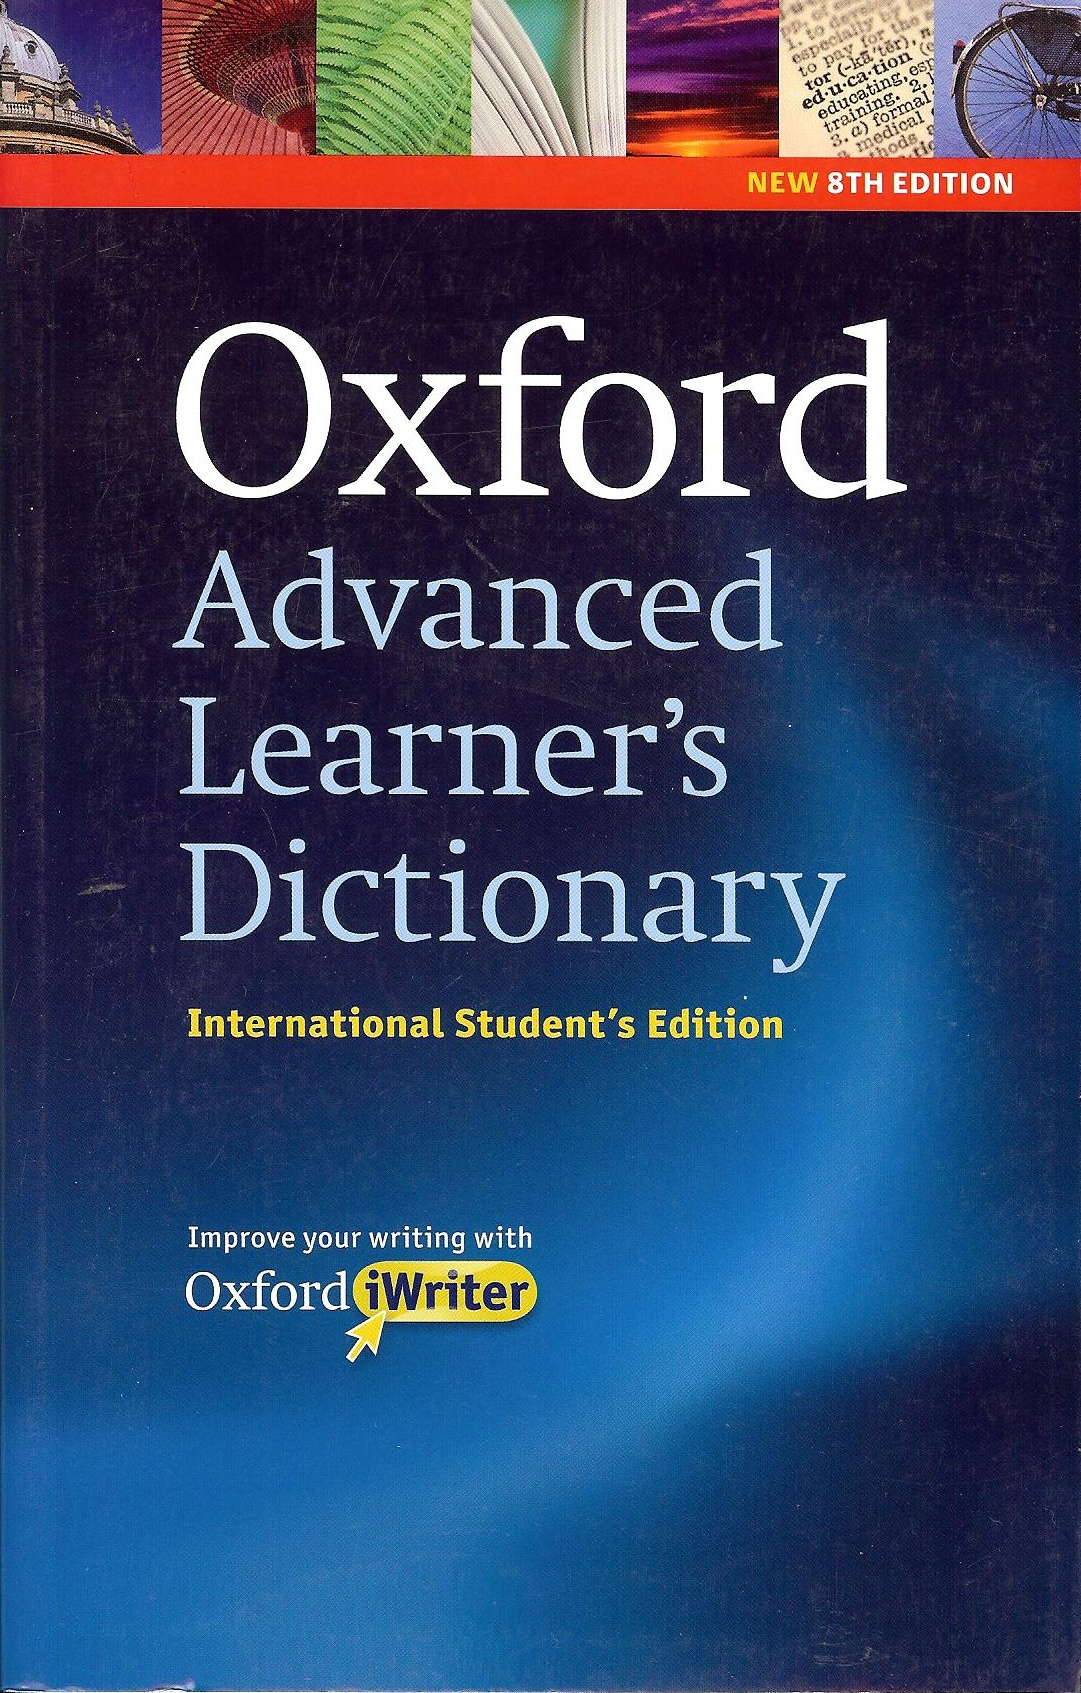 Oxford Advanced Learner's Dictionary 8th edition ISE